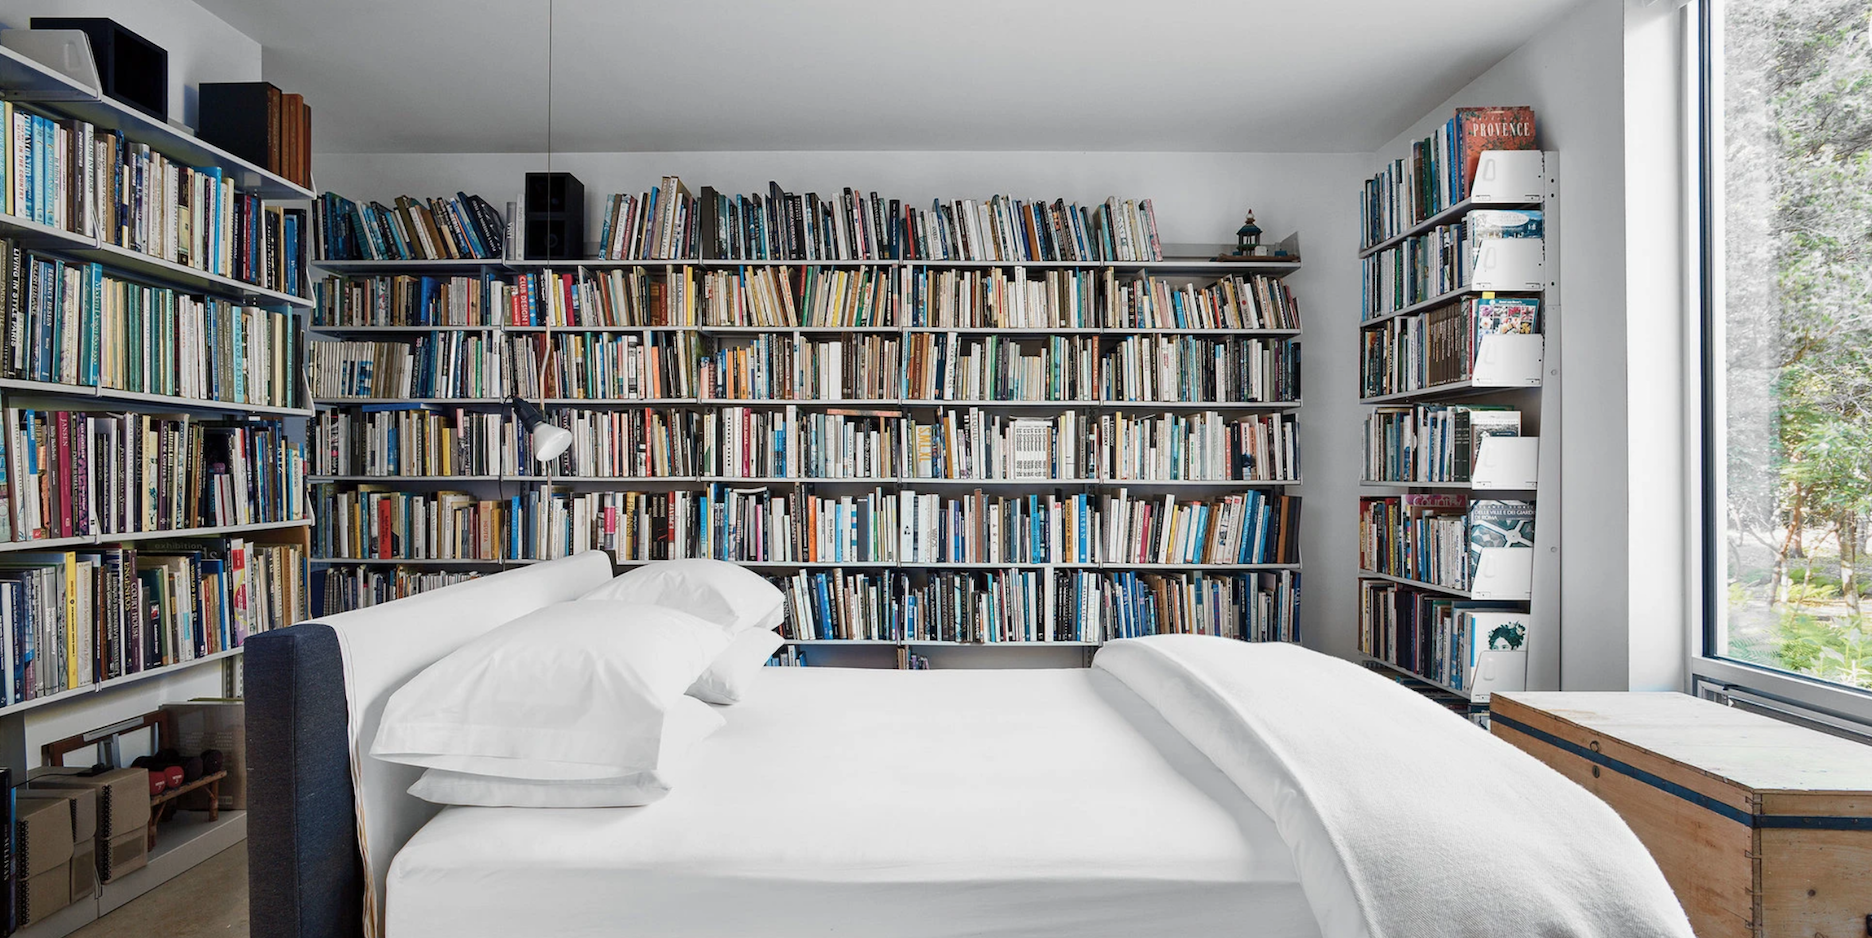 A bibliophile's dream bedroom, belonging to artist Jack Ceglic and architect Manuel Fernandez-Casteleiro.